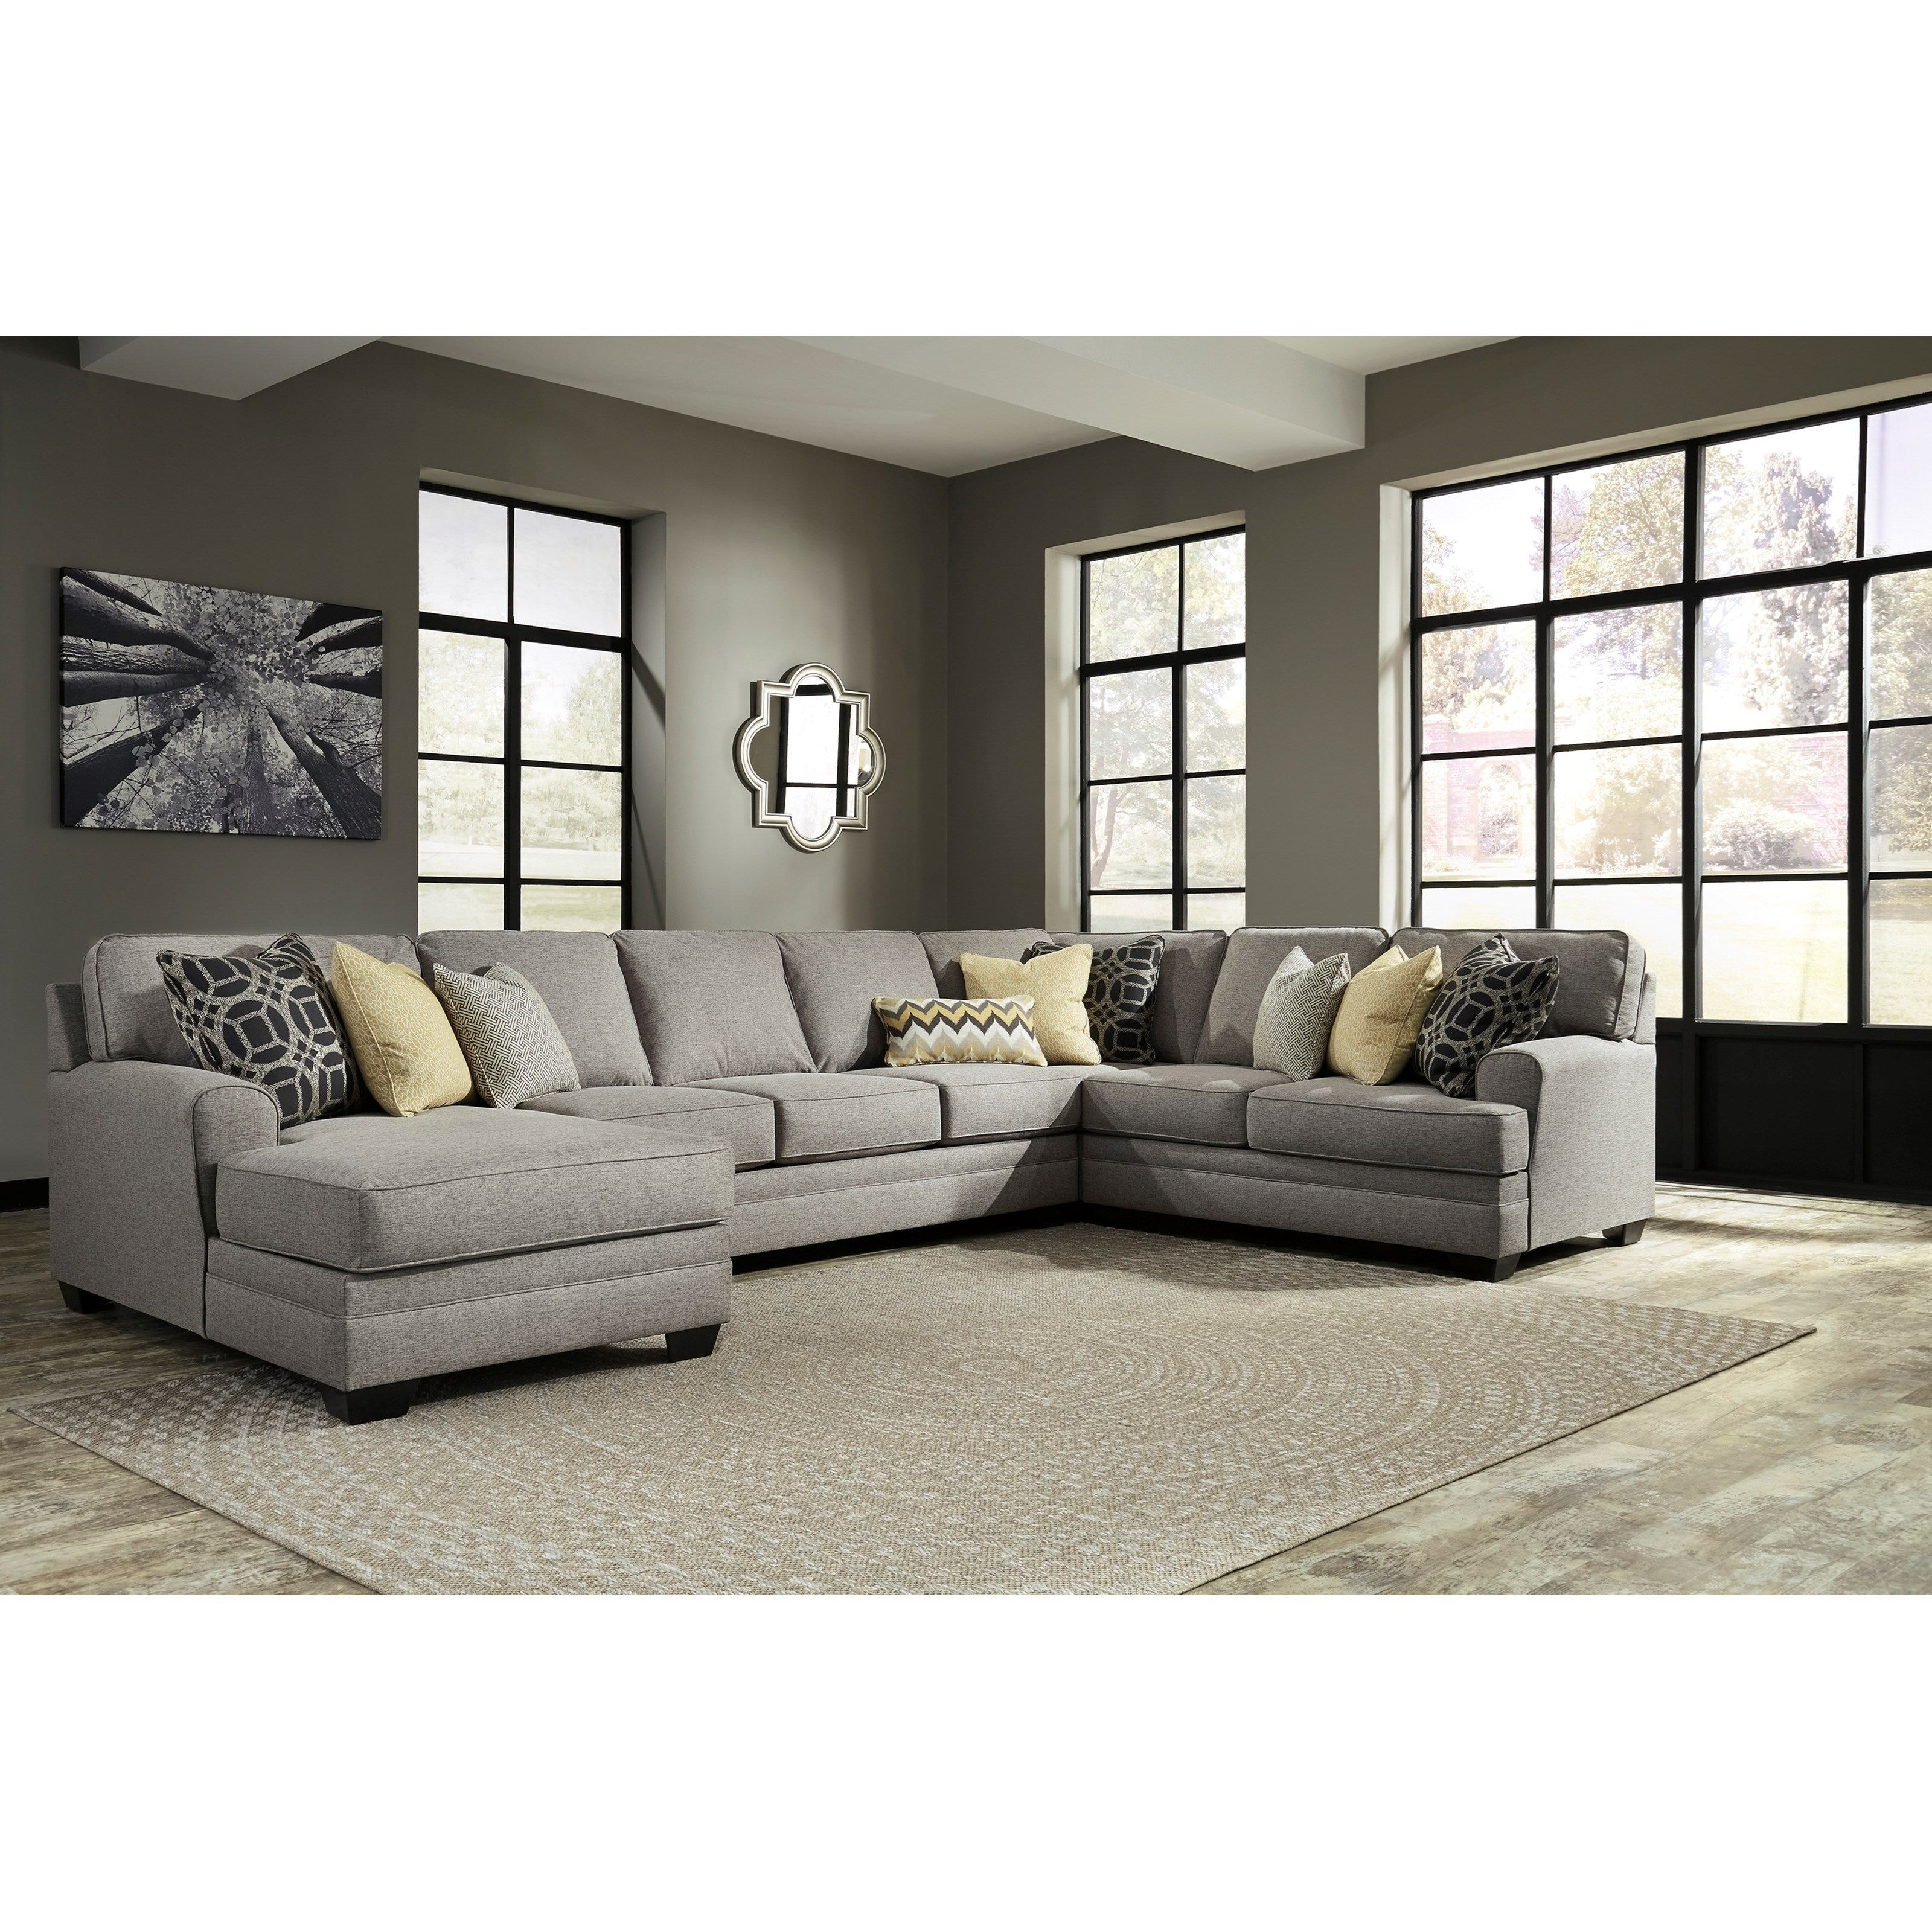 store ahfa palliser by sectional jerome item cupboard contemporary with products piece sofa laf furniture s leeds